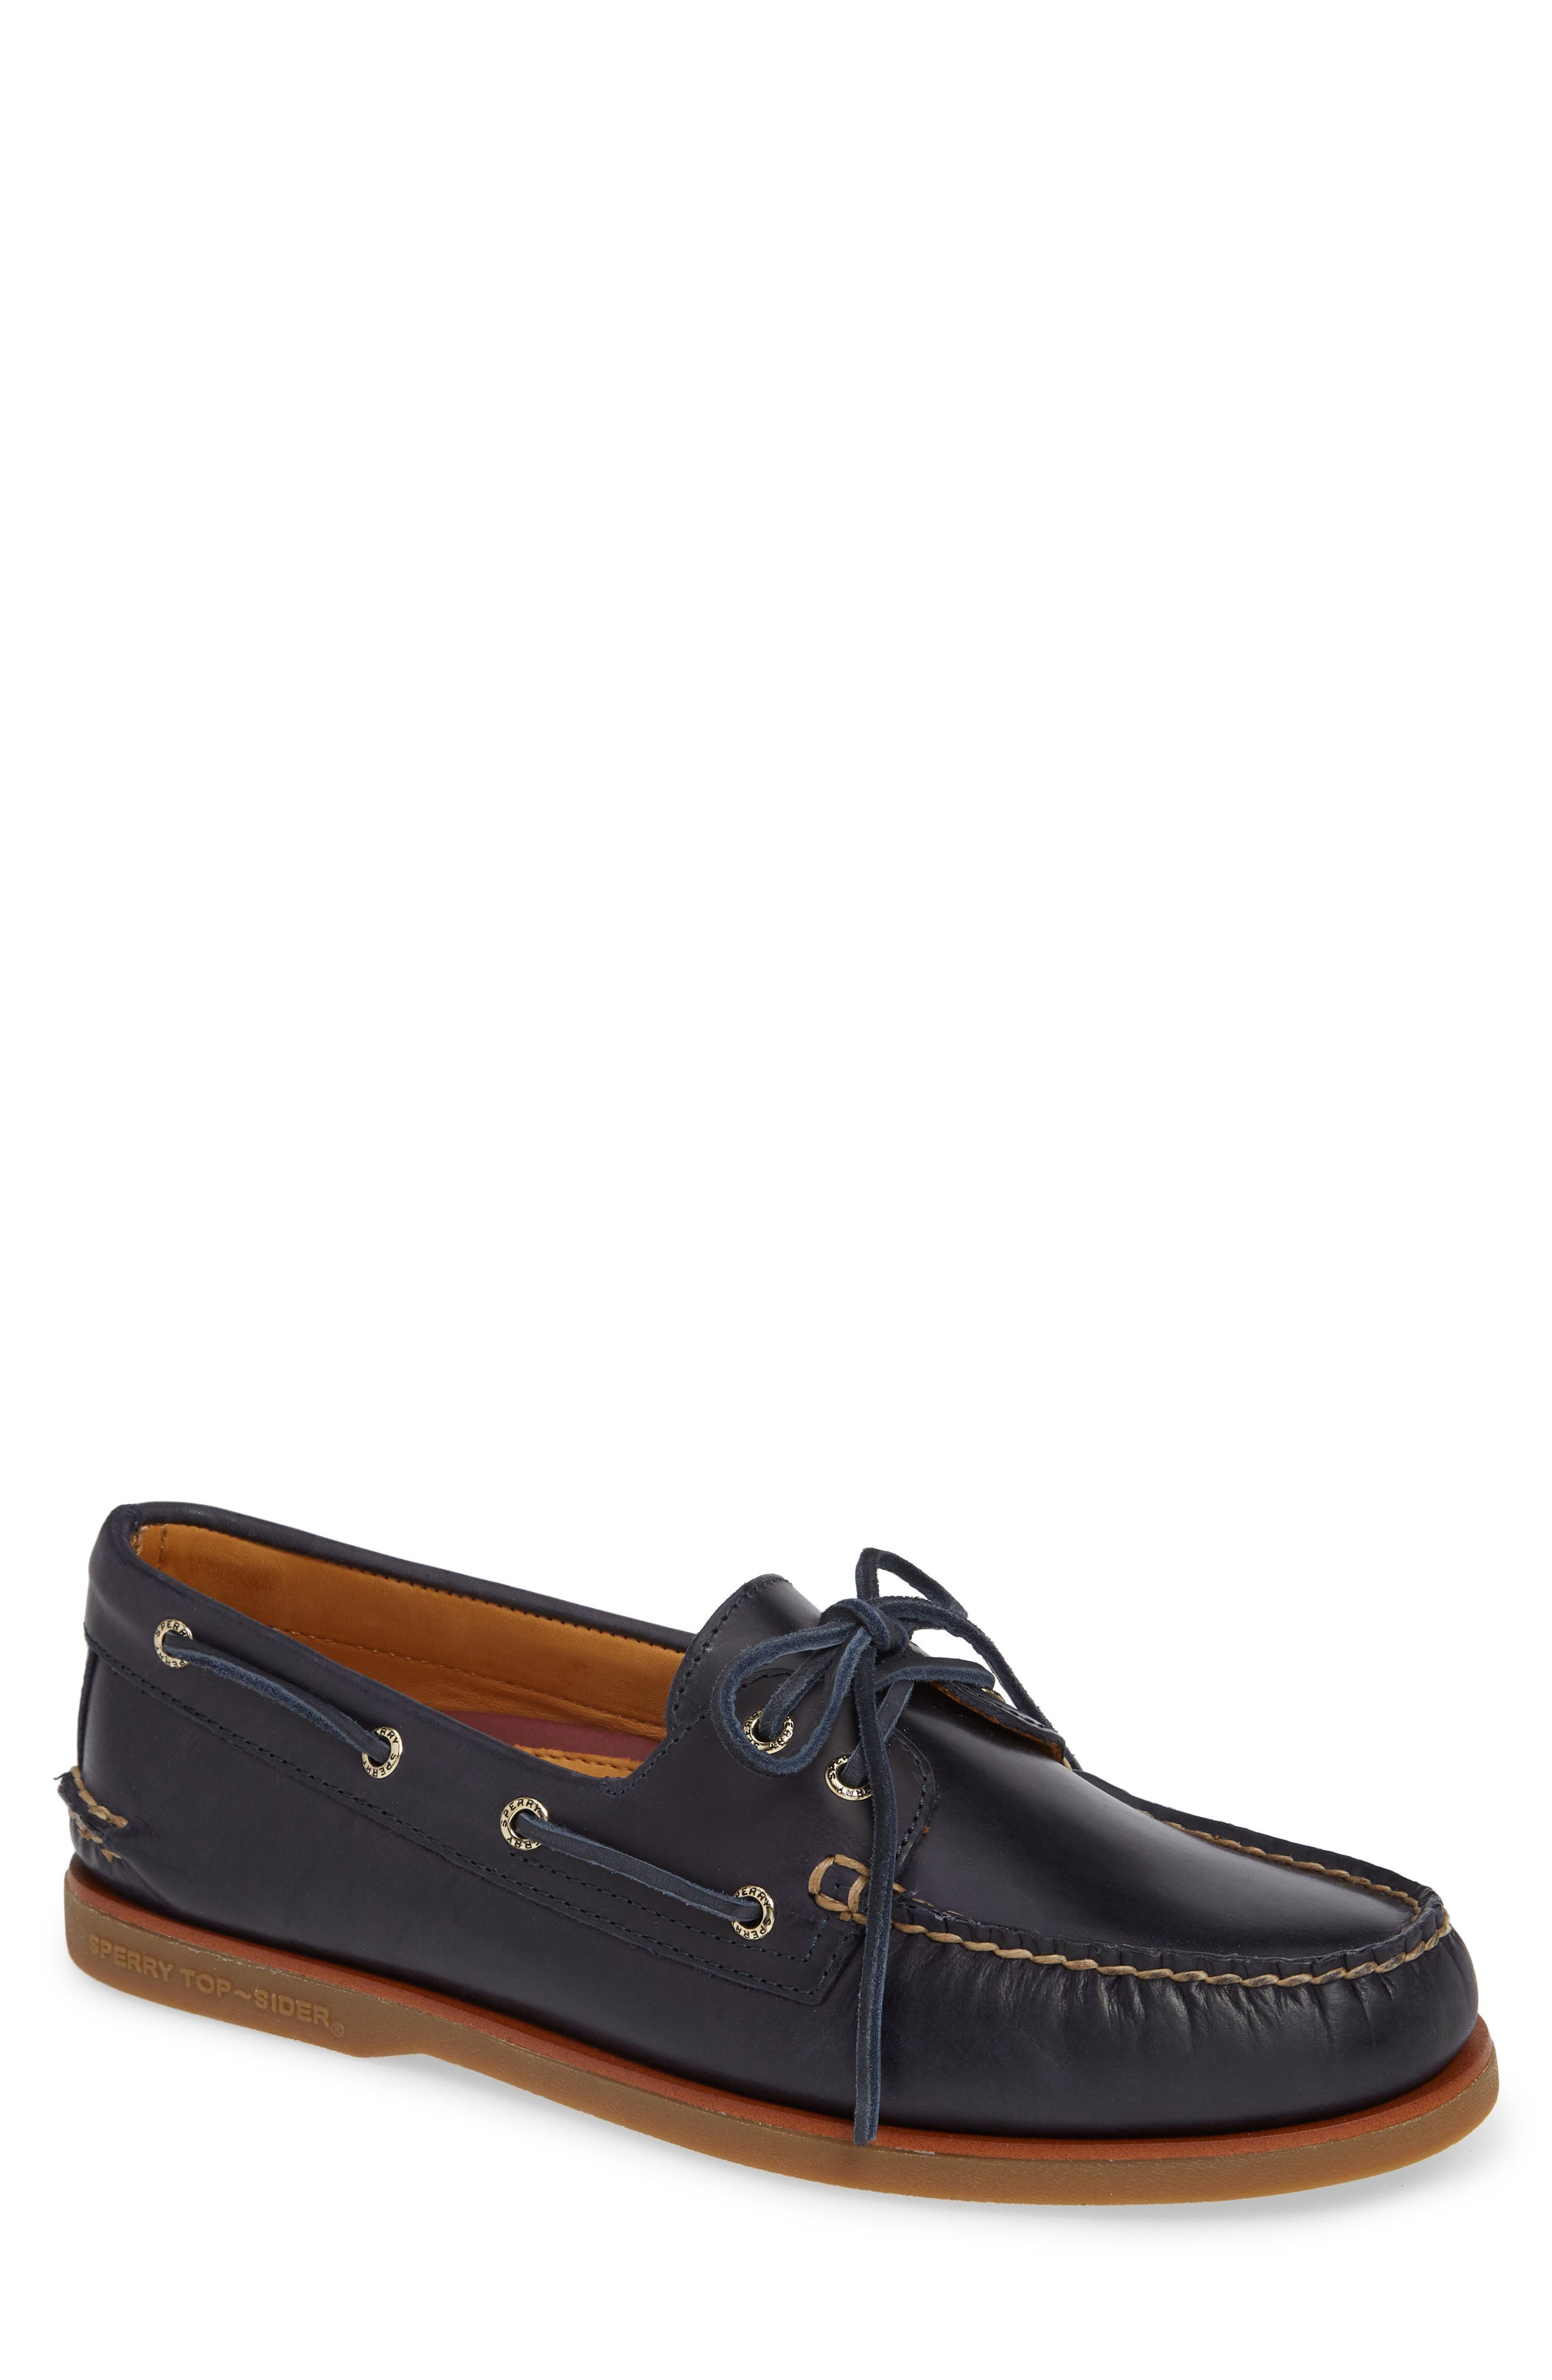 Gold Cup Boat Shoe,                         Main,                         color, NAVY/ GUM